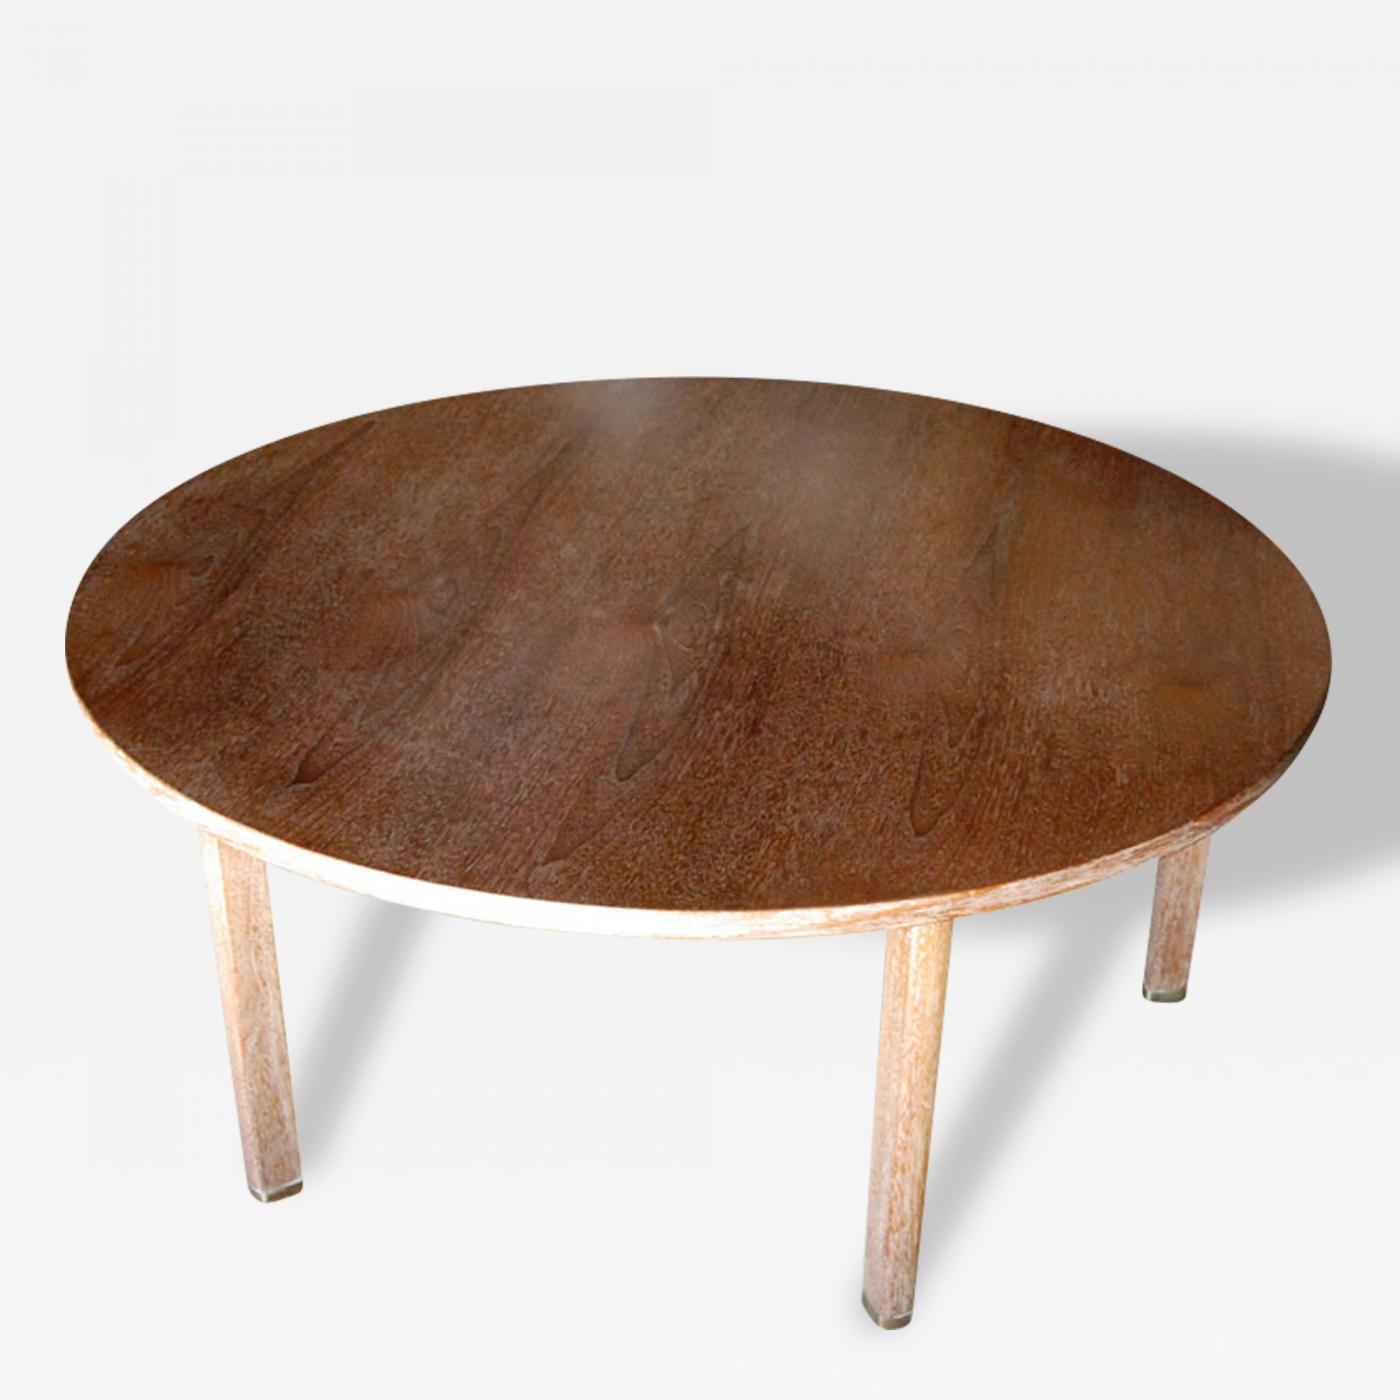 Edward Wormley Edward Wormley for Dunbar Coffee Table